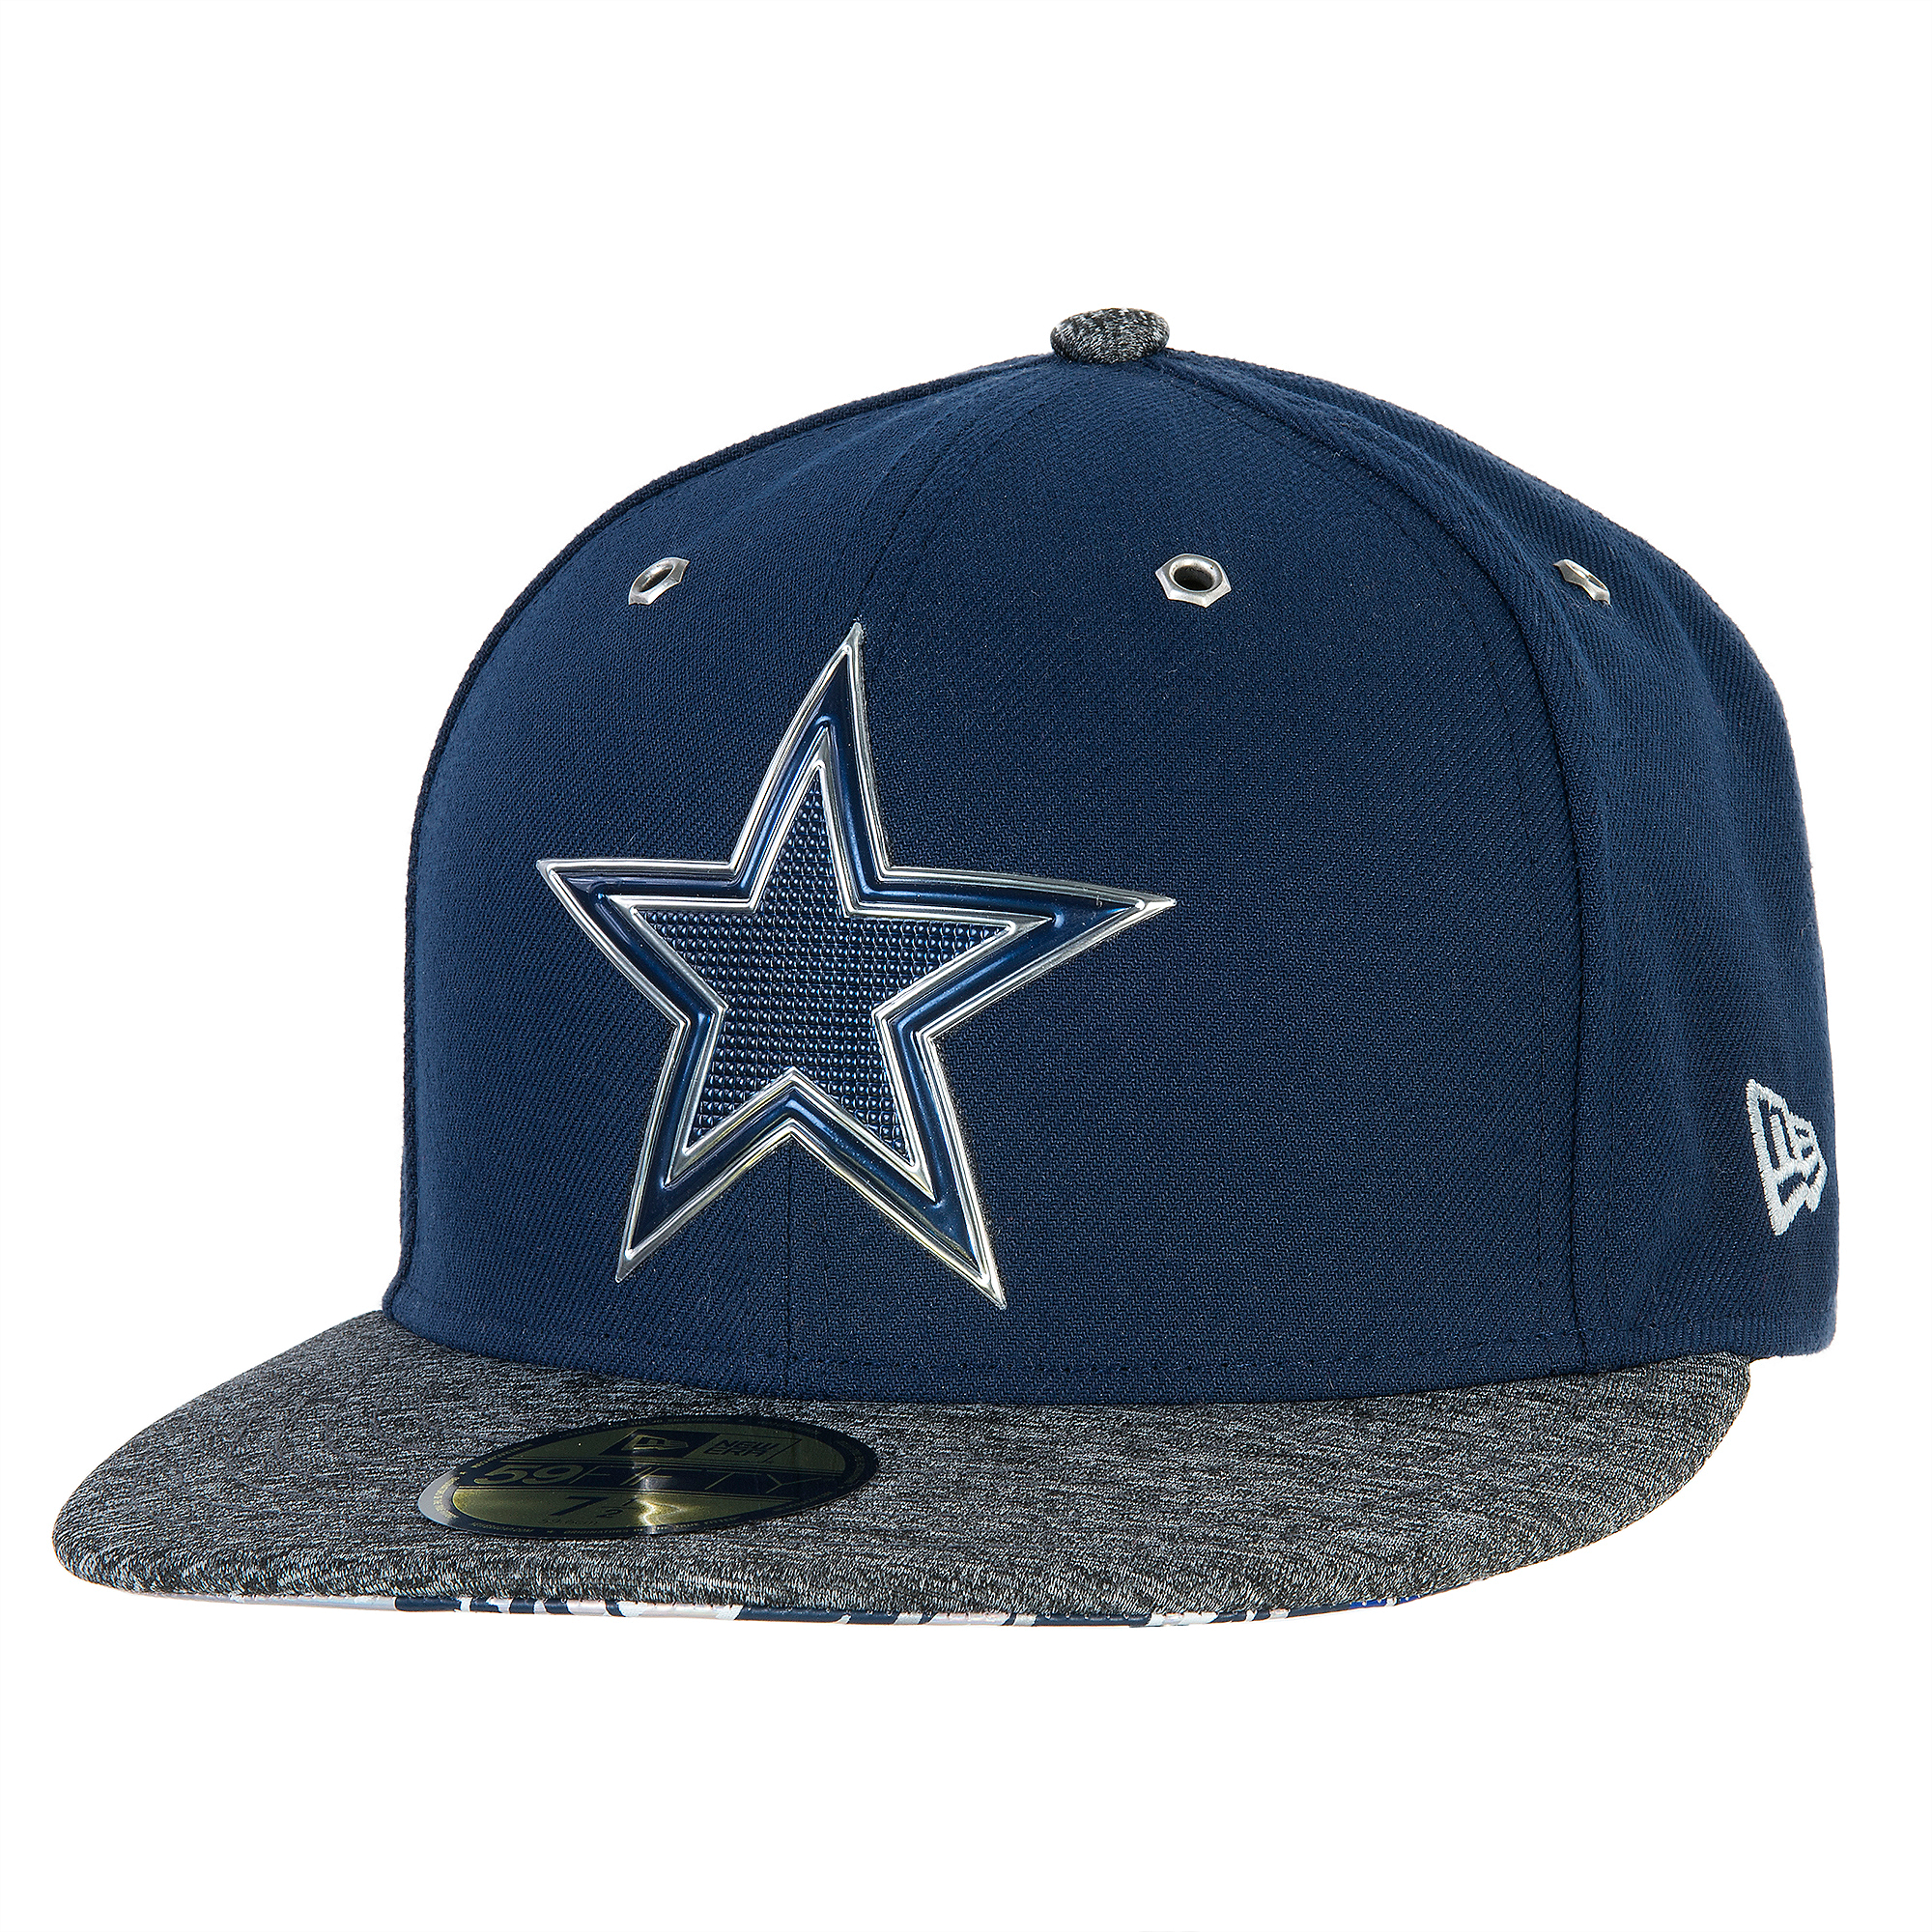 the latest 4f215 39421 ... wholesale dallas cowboys new era 2016 mens on field draft 59fifty cap  439c9 6fdbe